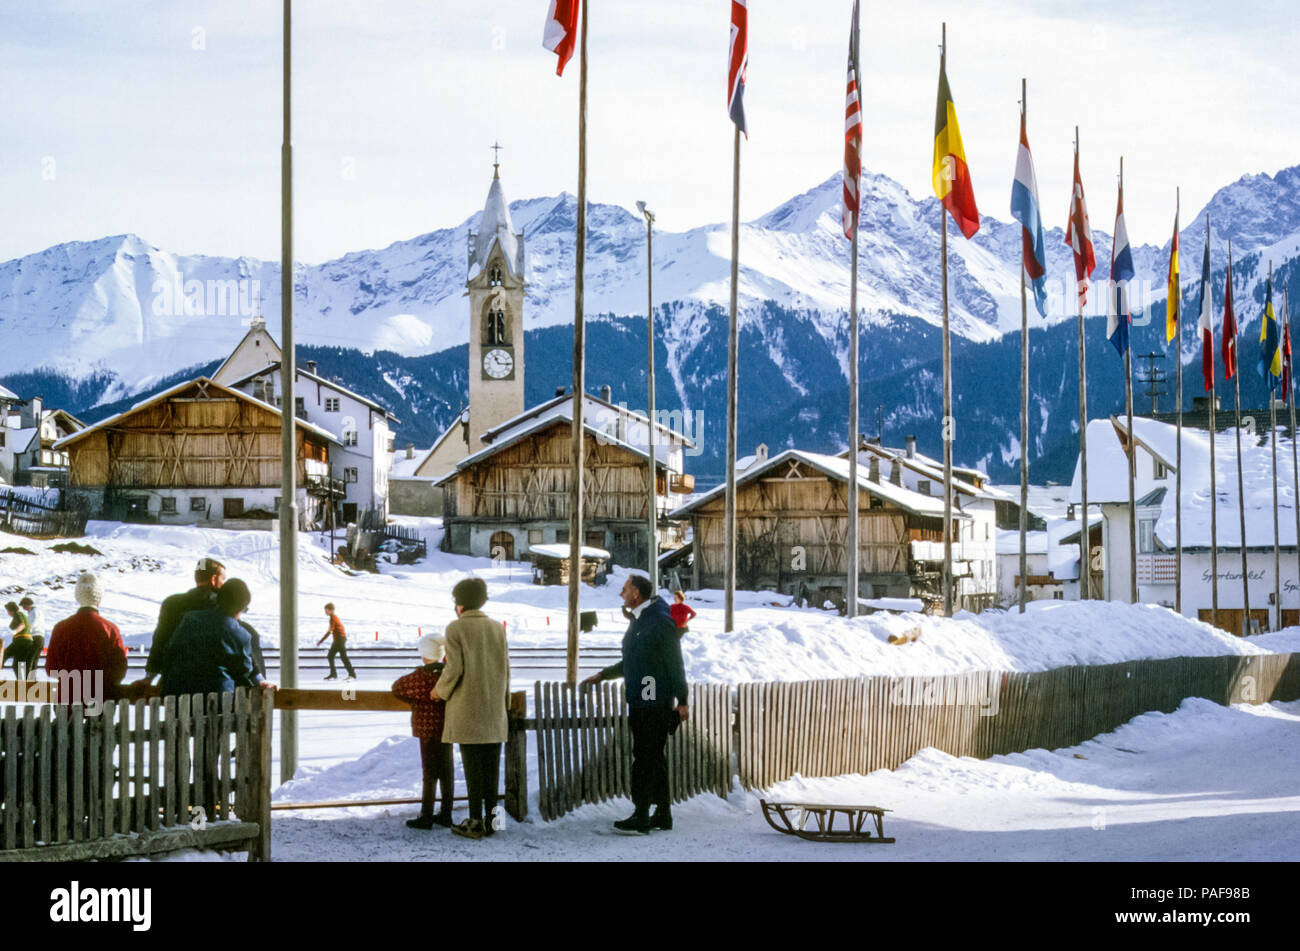 1960s-austrian-ski-resort-with-old-churc